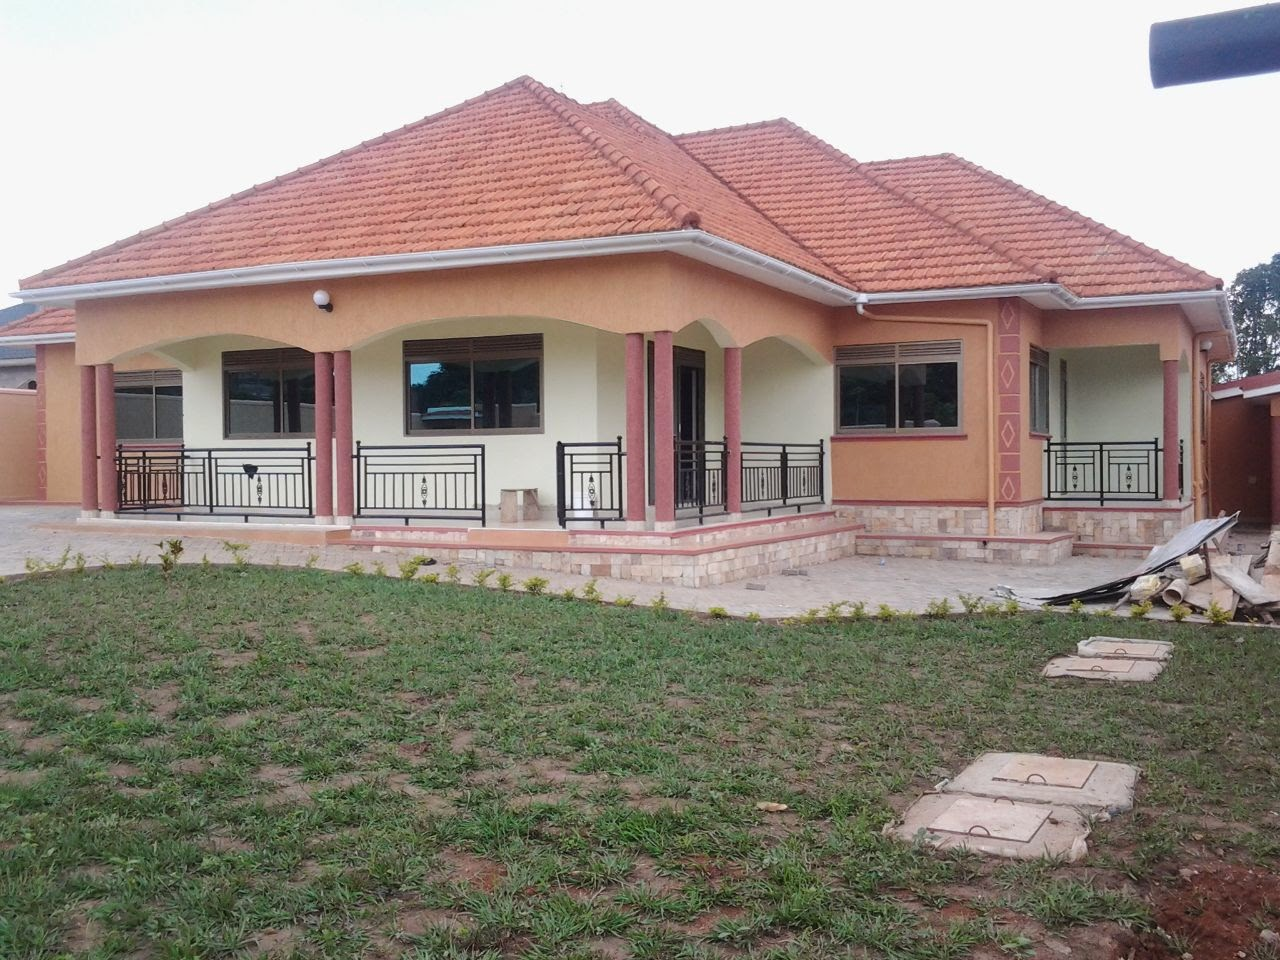 Houses for sale kampala uganda september 2014 for Home blueprints for sale